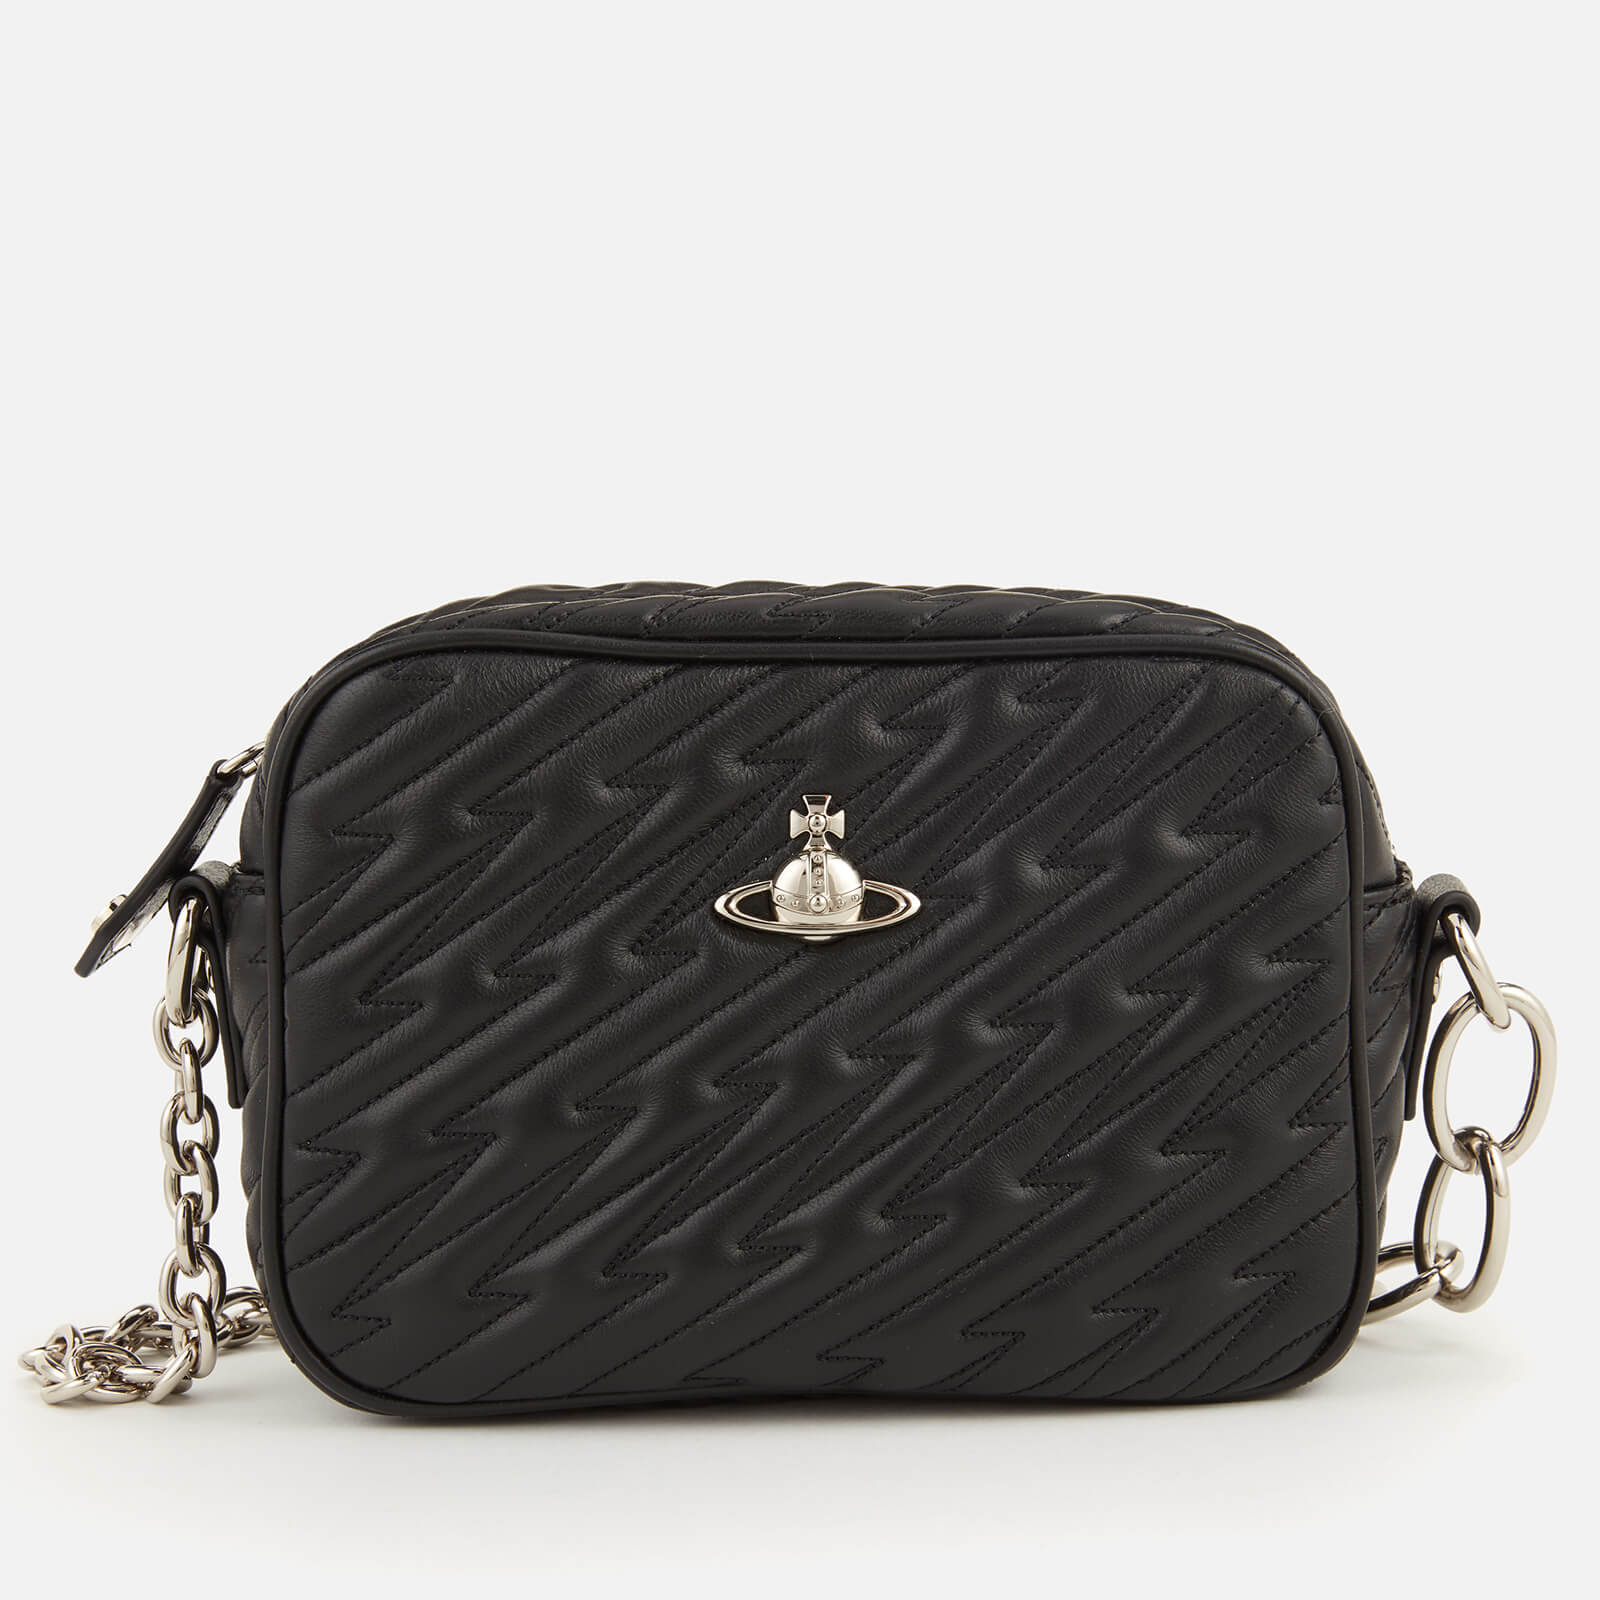 7441b697ff Vivienne Westwood Women's Coventry Camera Bag - Black - Free UK Delivery  over £50